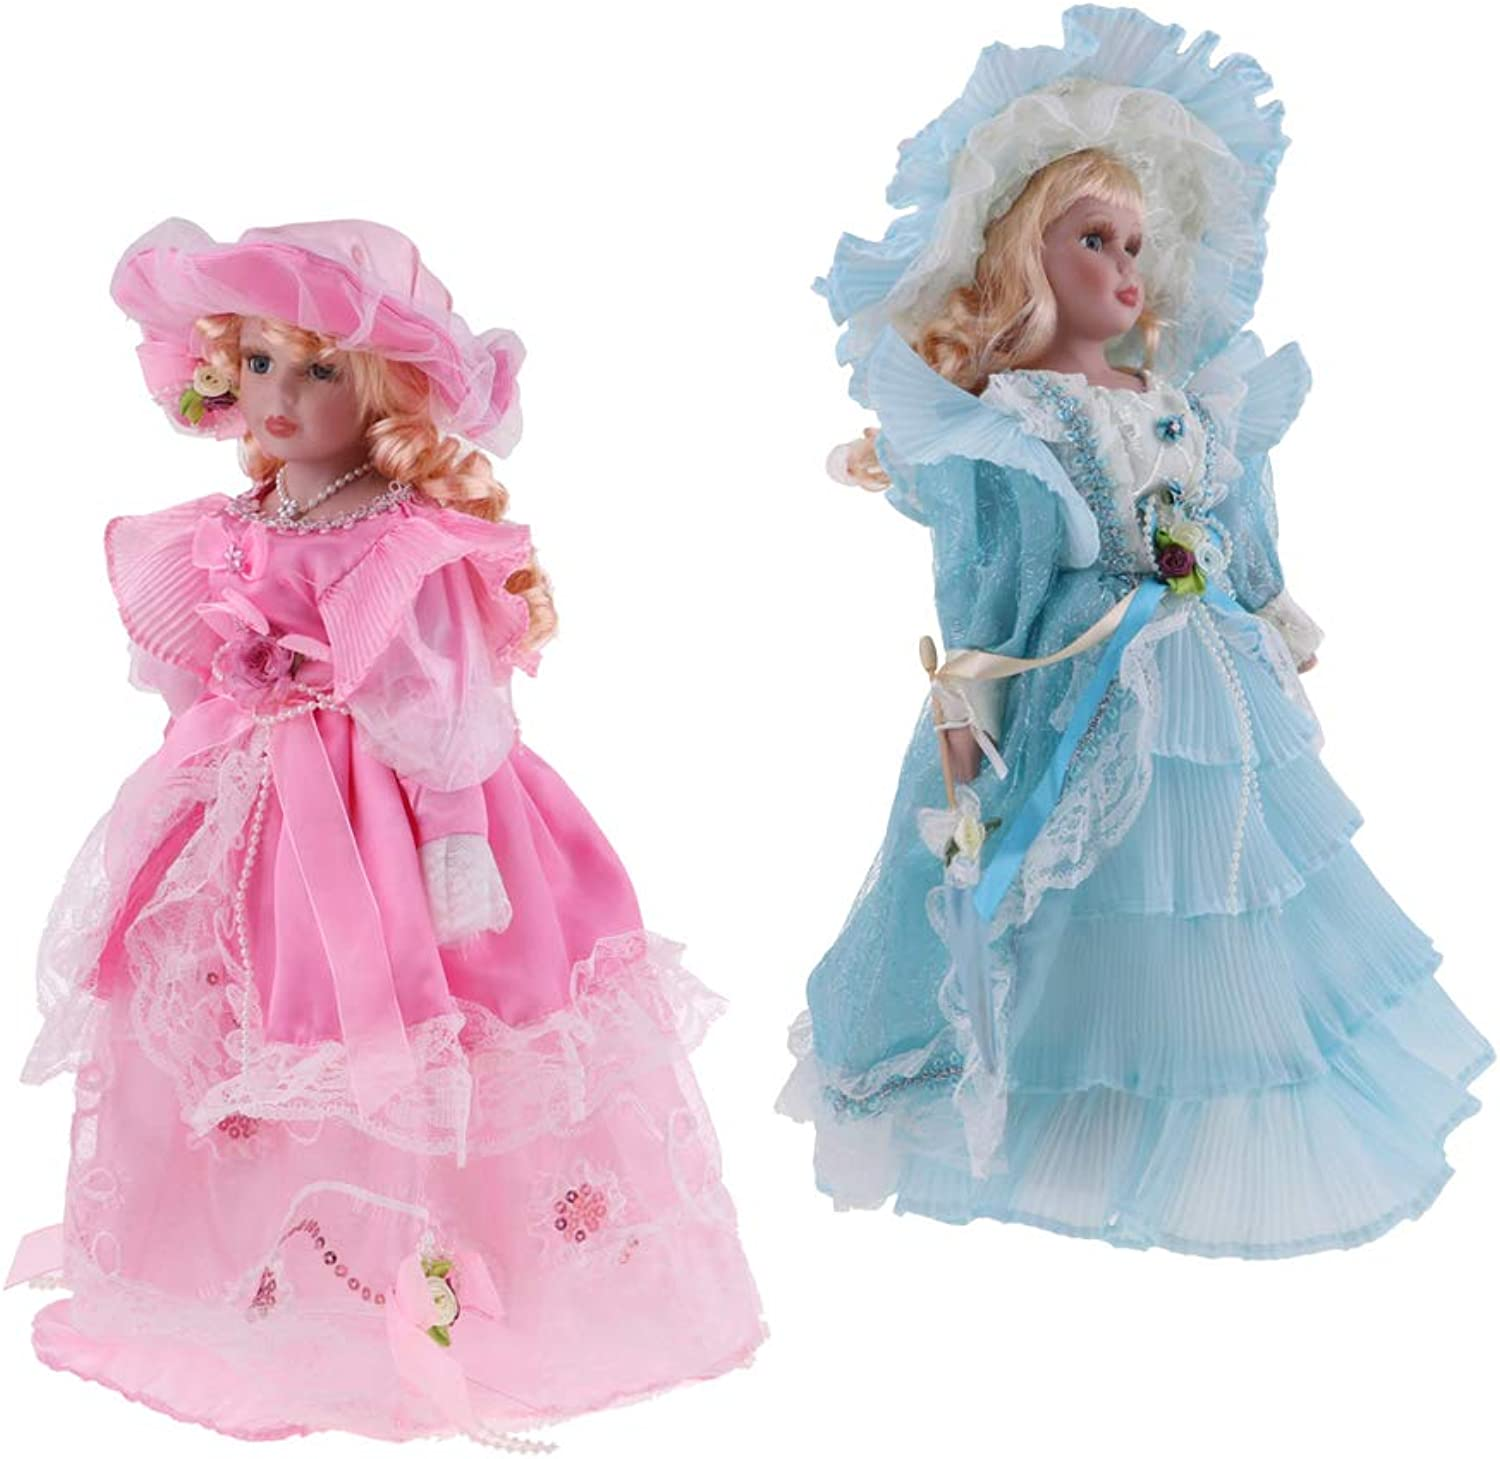 Baosity 40cm Ceramic Lady Doll Vintage Figure in Light bluee & Pink Dress Collectible